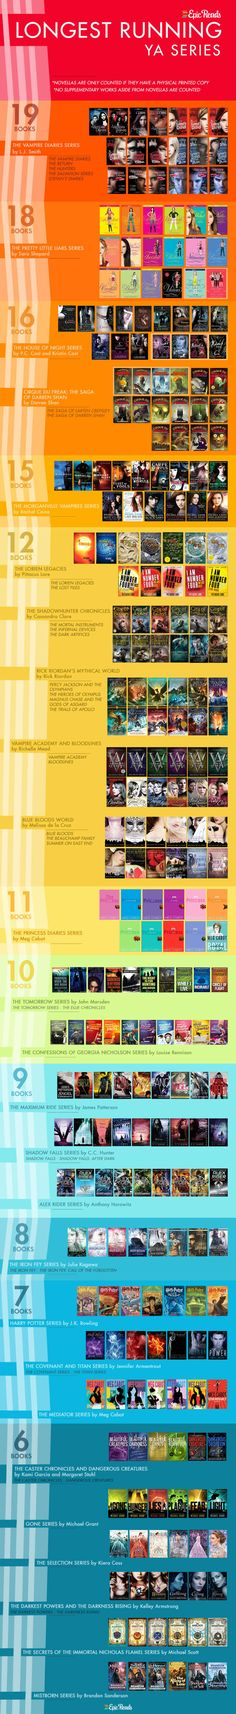 There are 13 #YA series that consist of 10 or more books #infographic